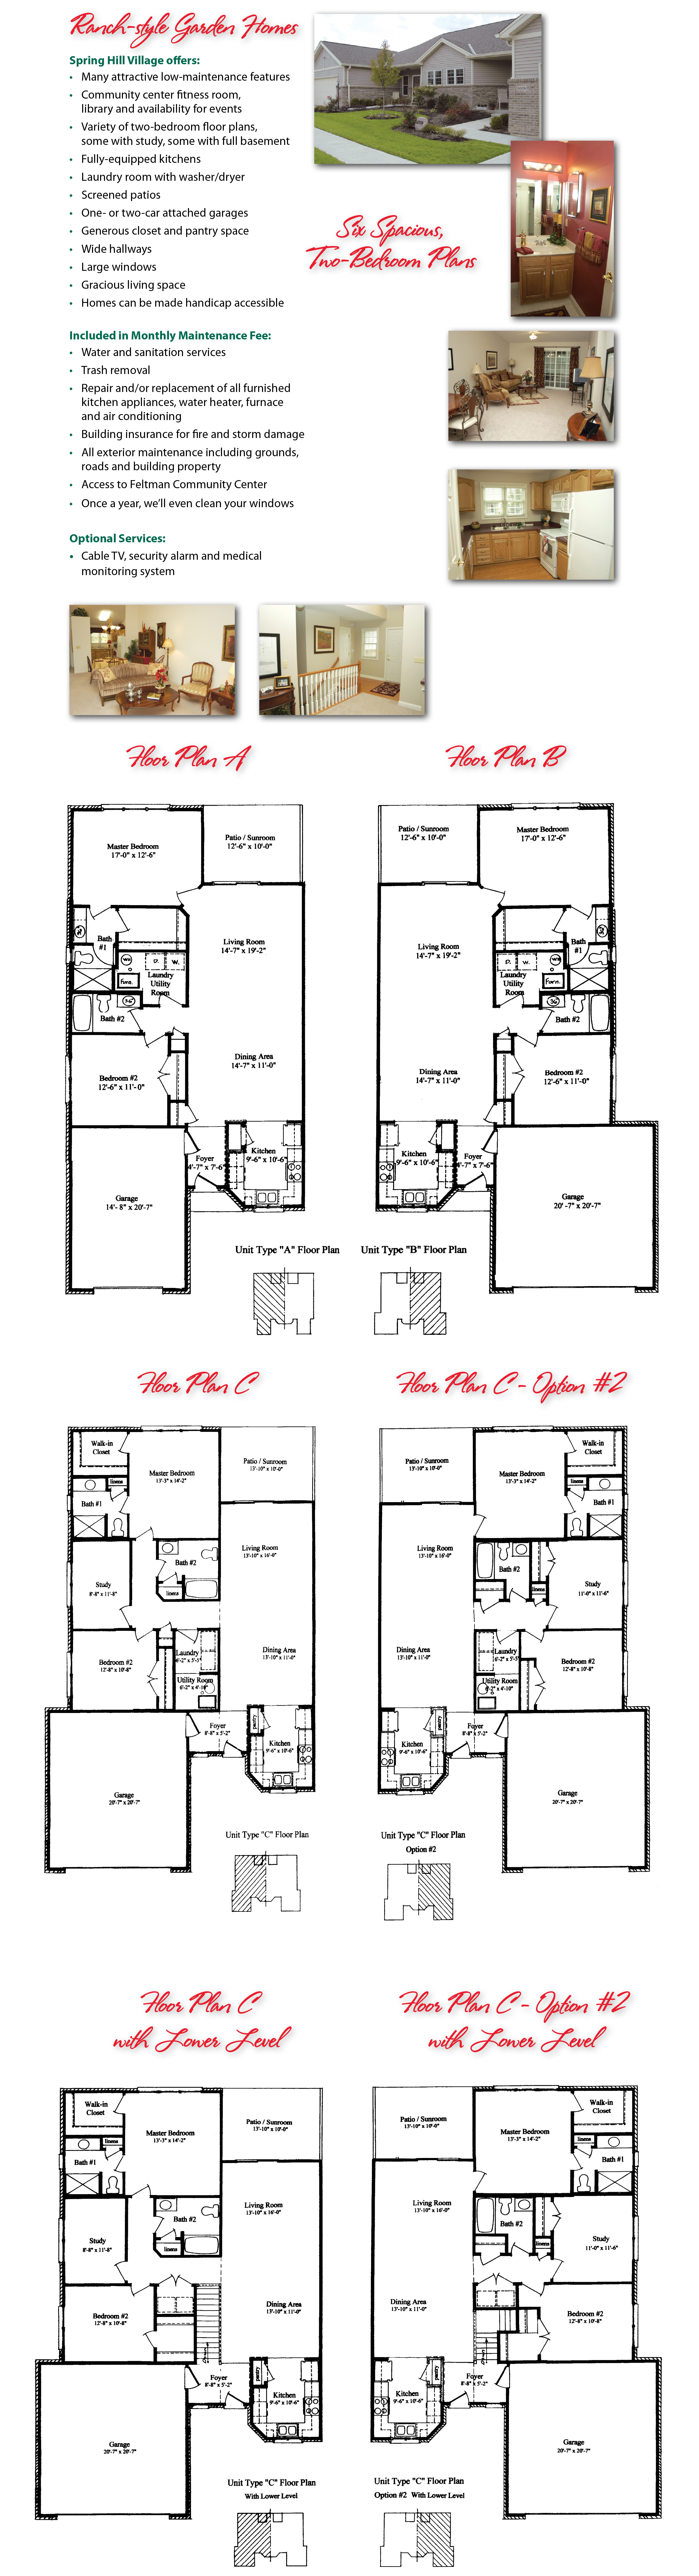 Rendderings of Spring Hill Floor Plans